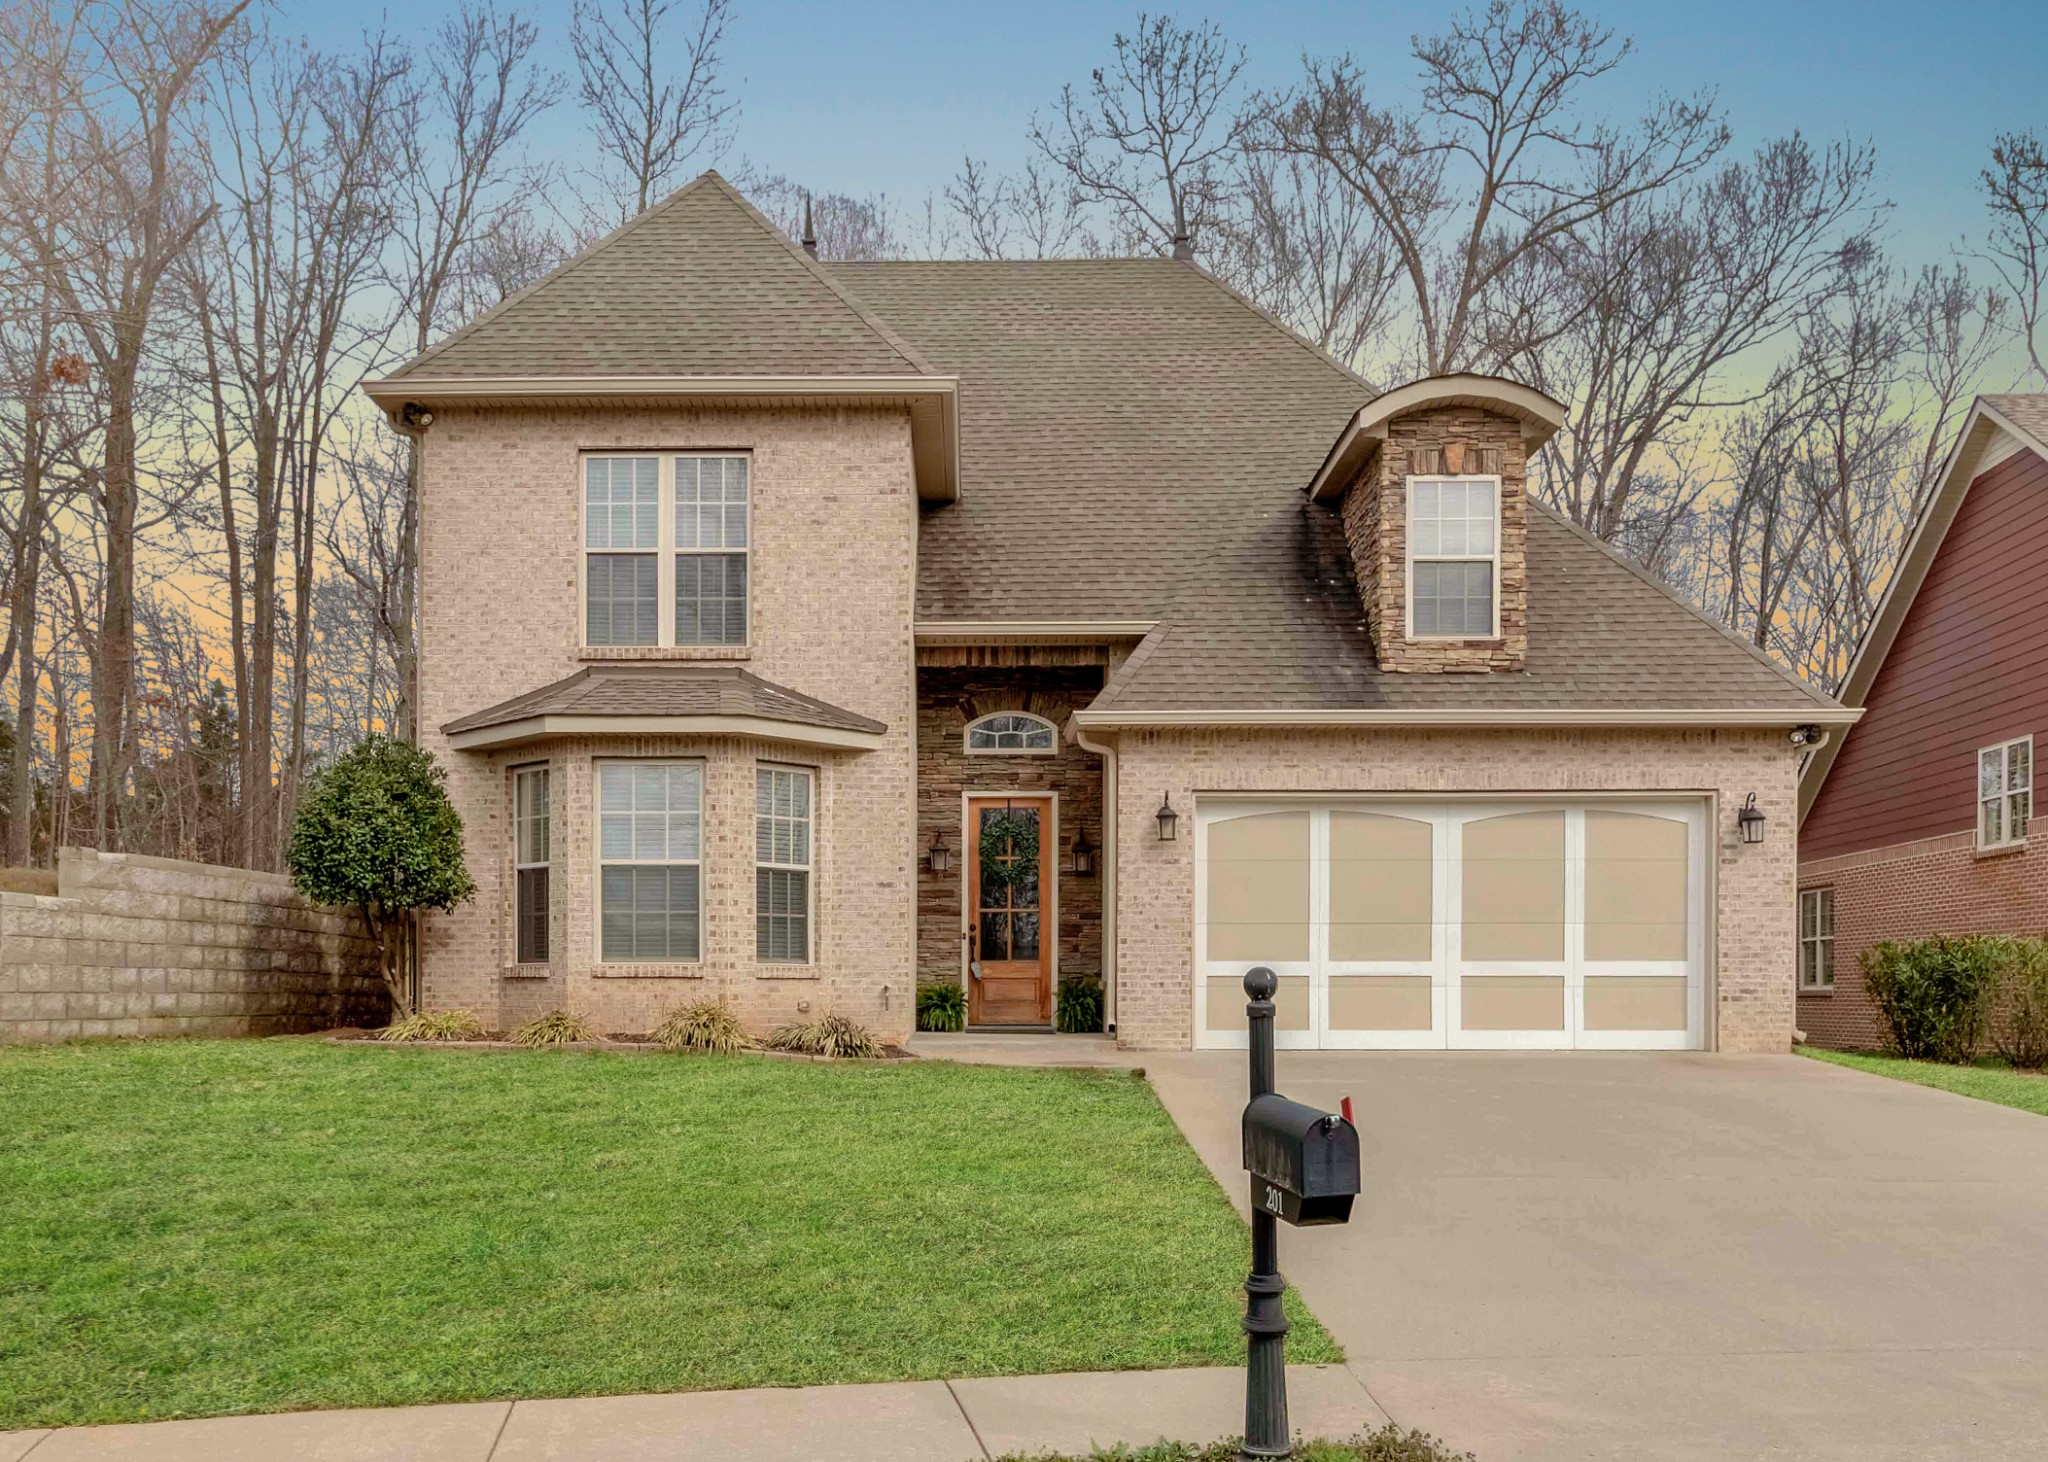 201 Birnam Wood Trce Property Photo - Clarksville, TN real estate listing